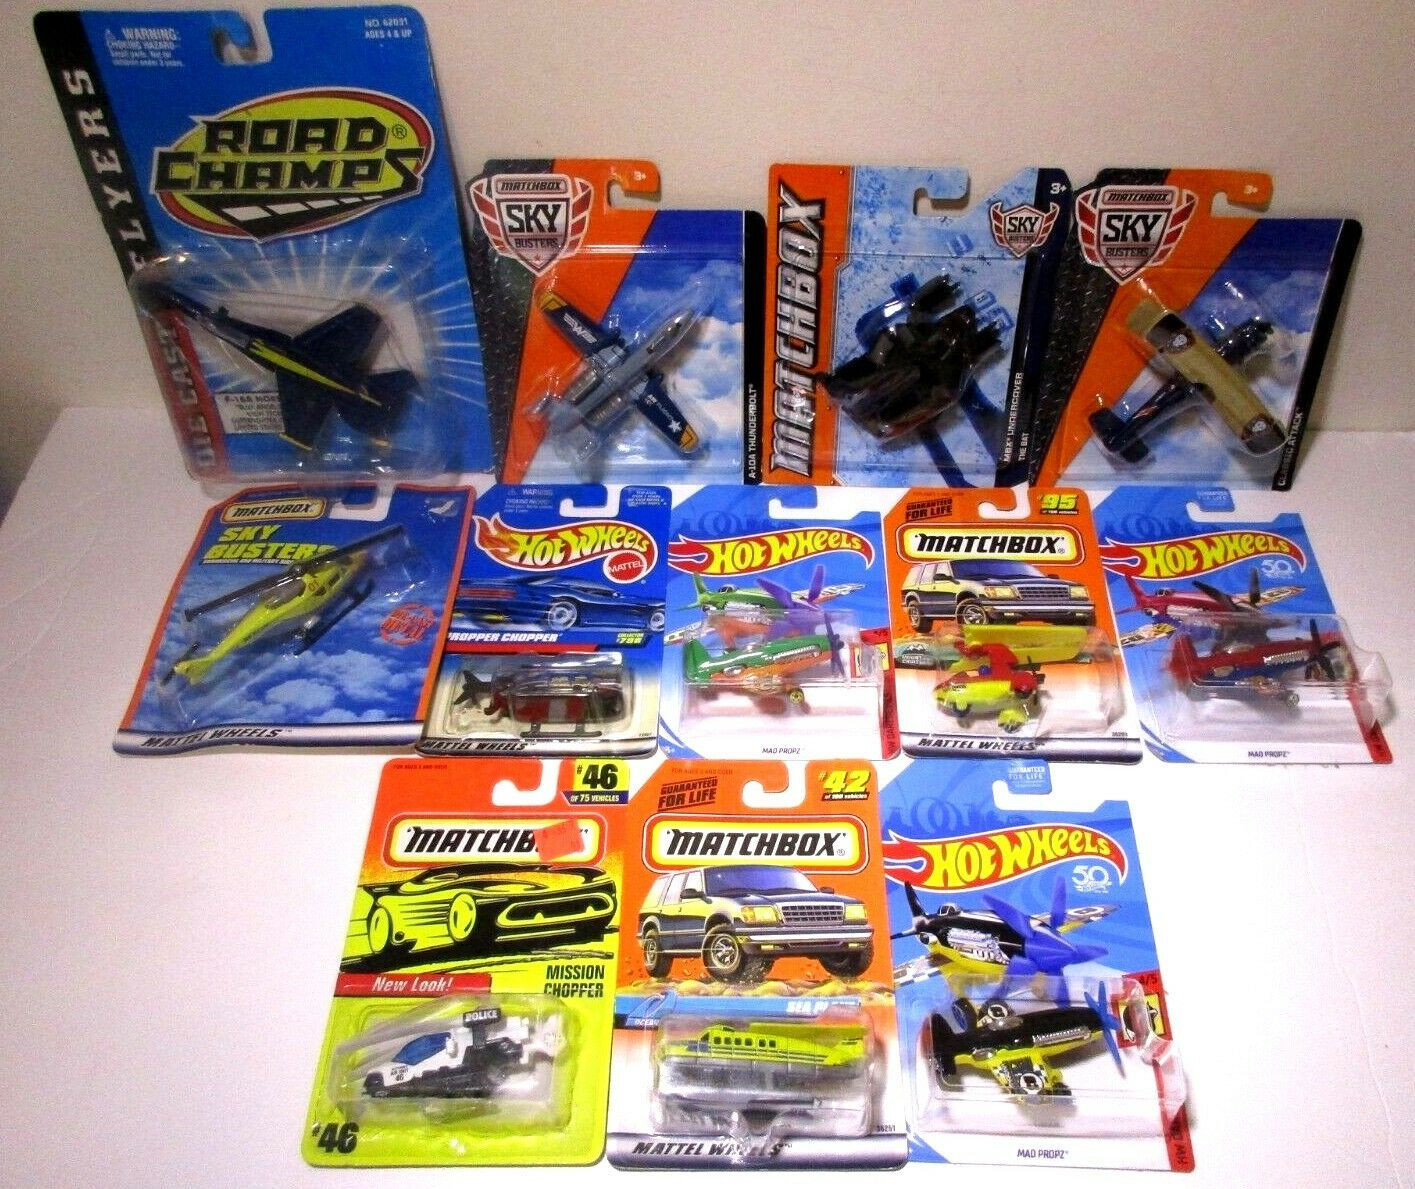 Hot Wheels Matchbox Sky Busters Diecast Military Planes Jets F-18 F-18 F-18 Helicopter Lot b3dad7